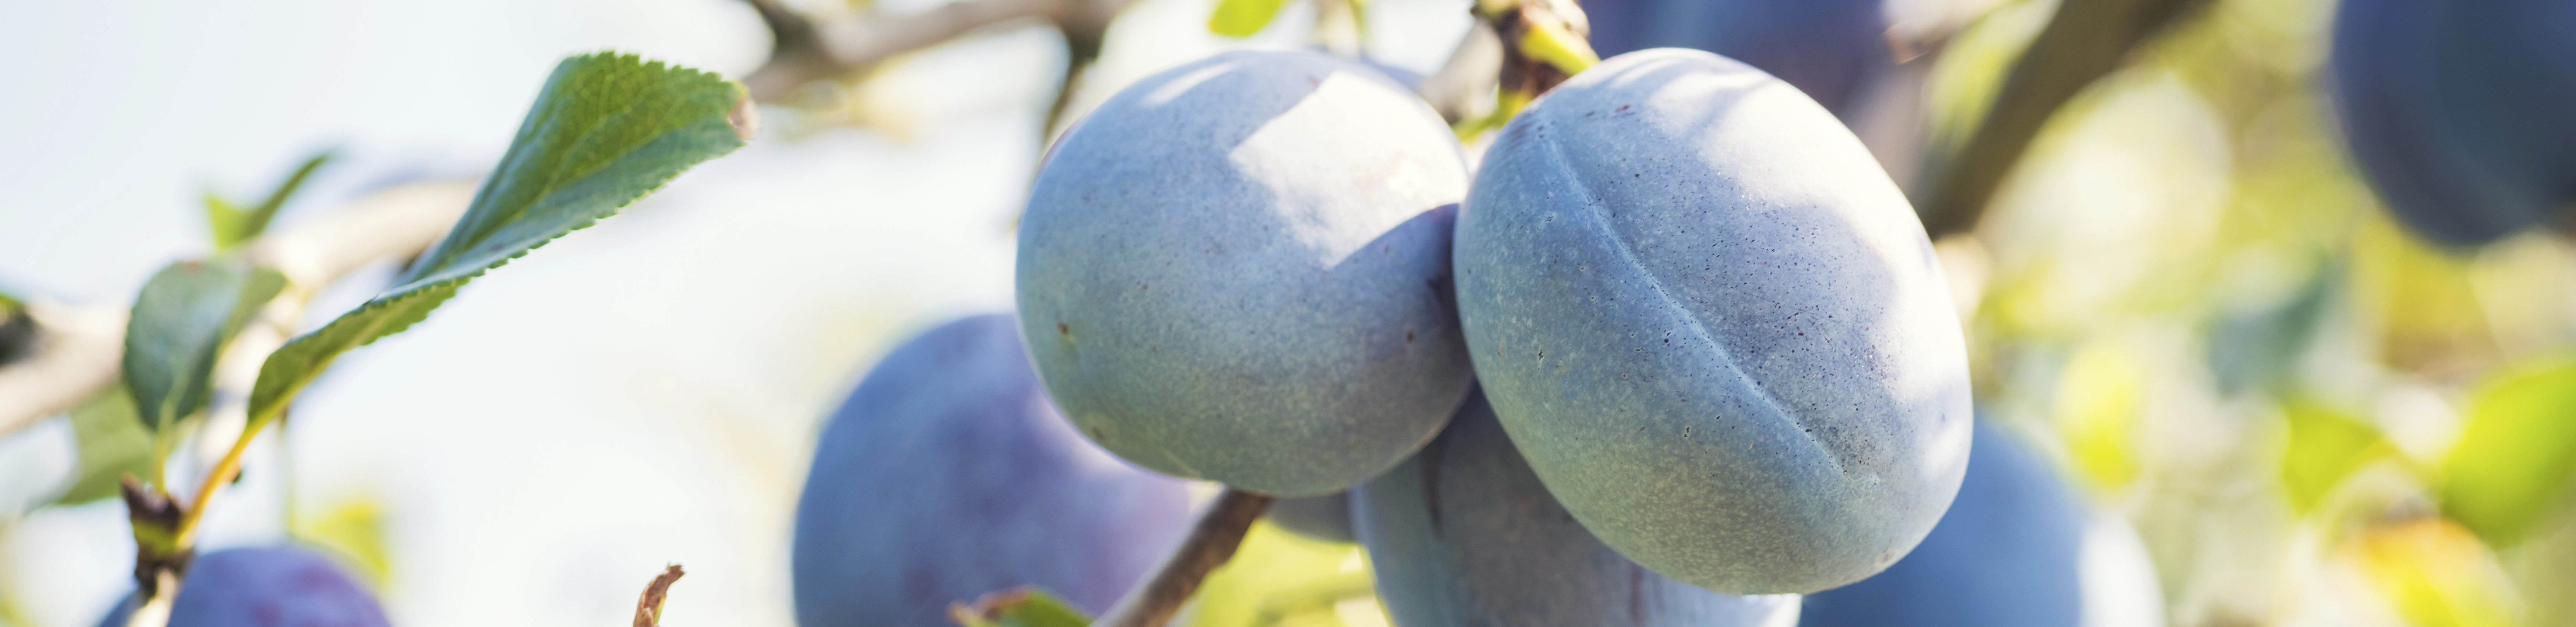 Summer Fruits: Plums